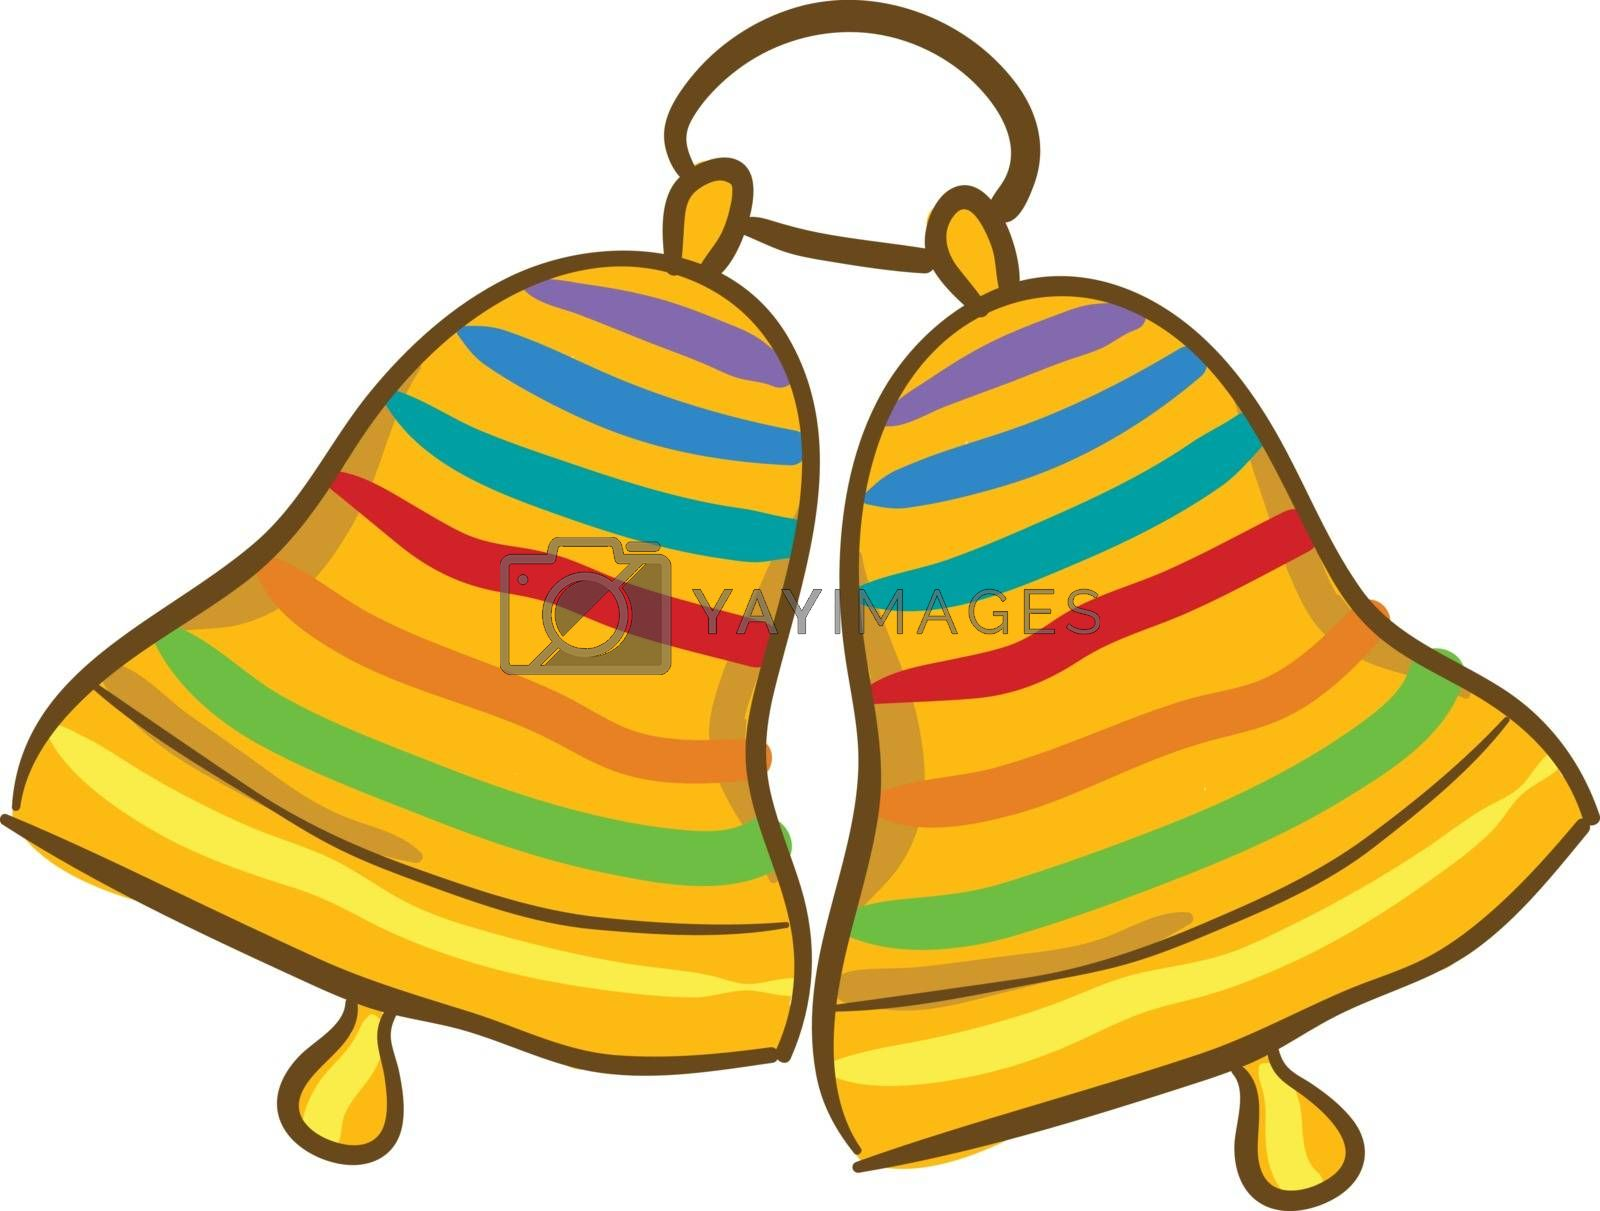 Royalty free image of Painting of two ringing golden bells with multi-colored bands de by Morphart